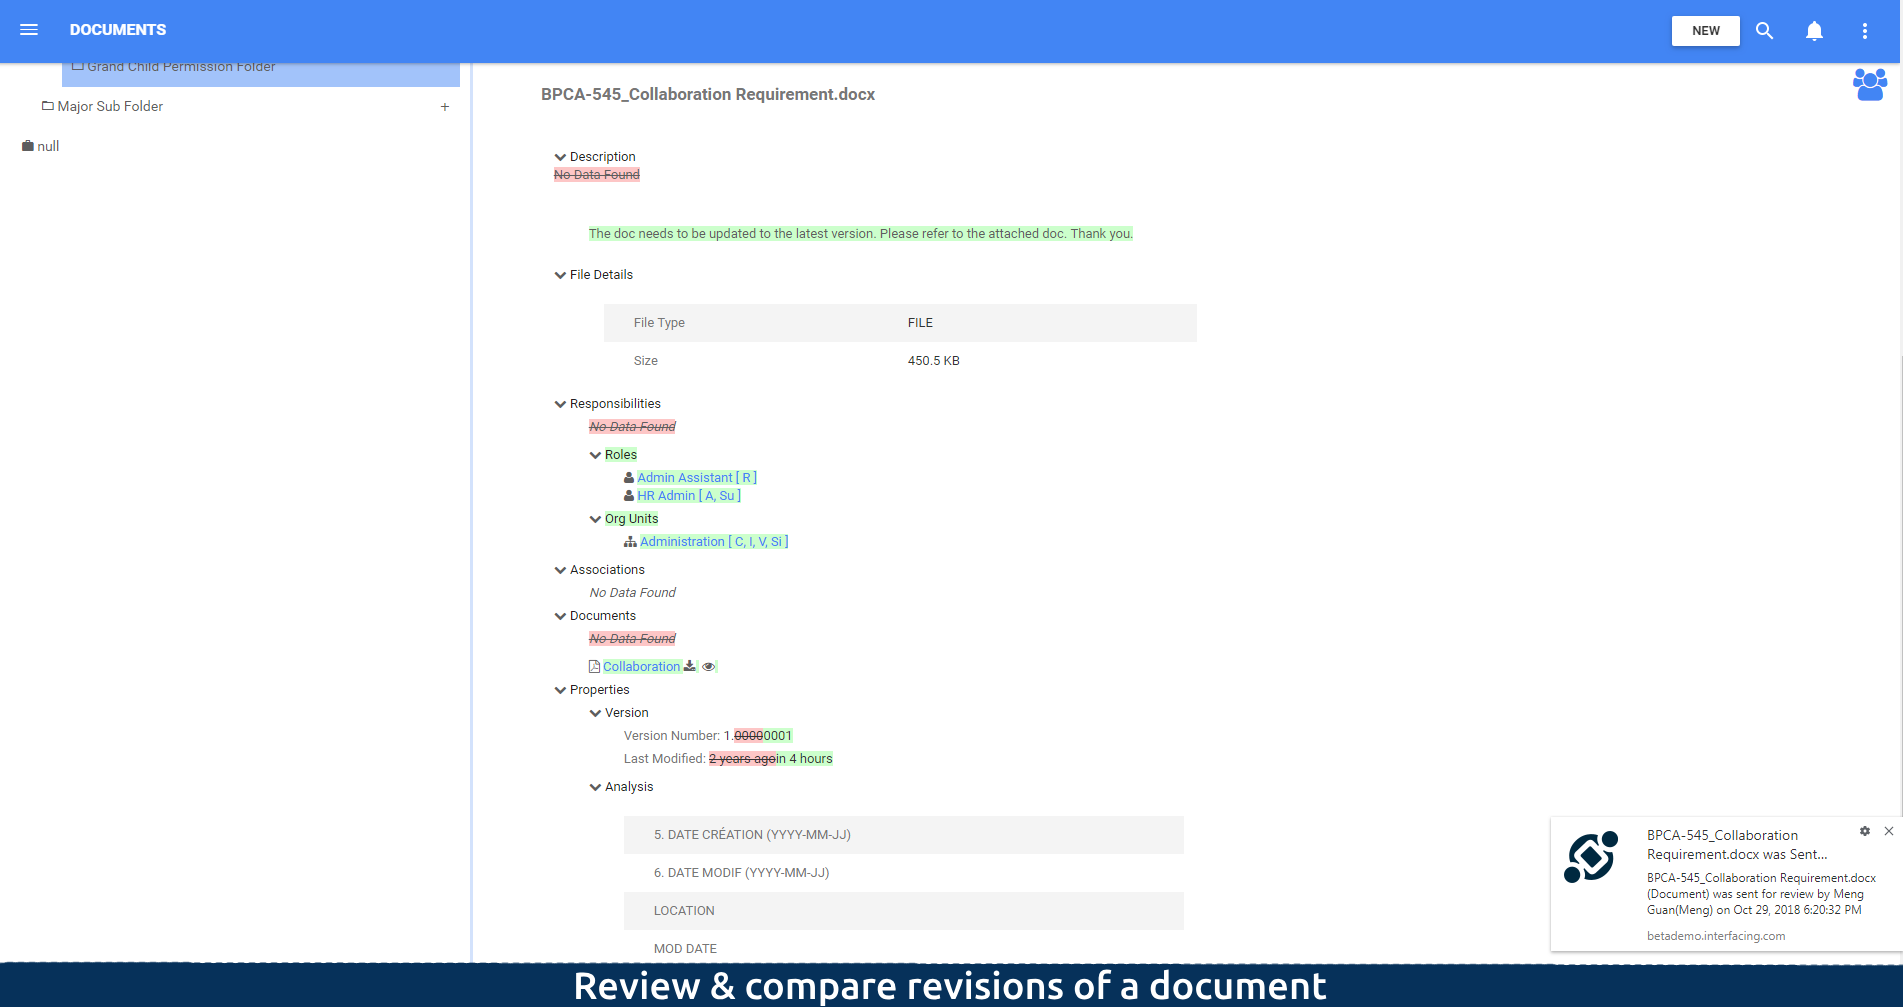 Review & compare revisions